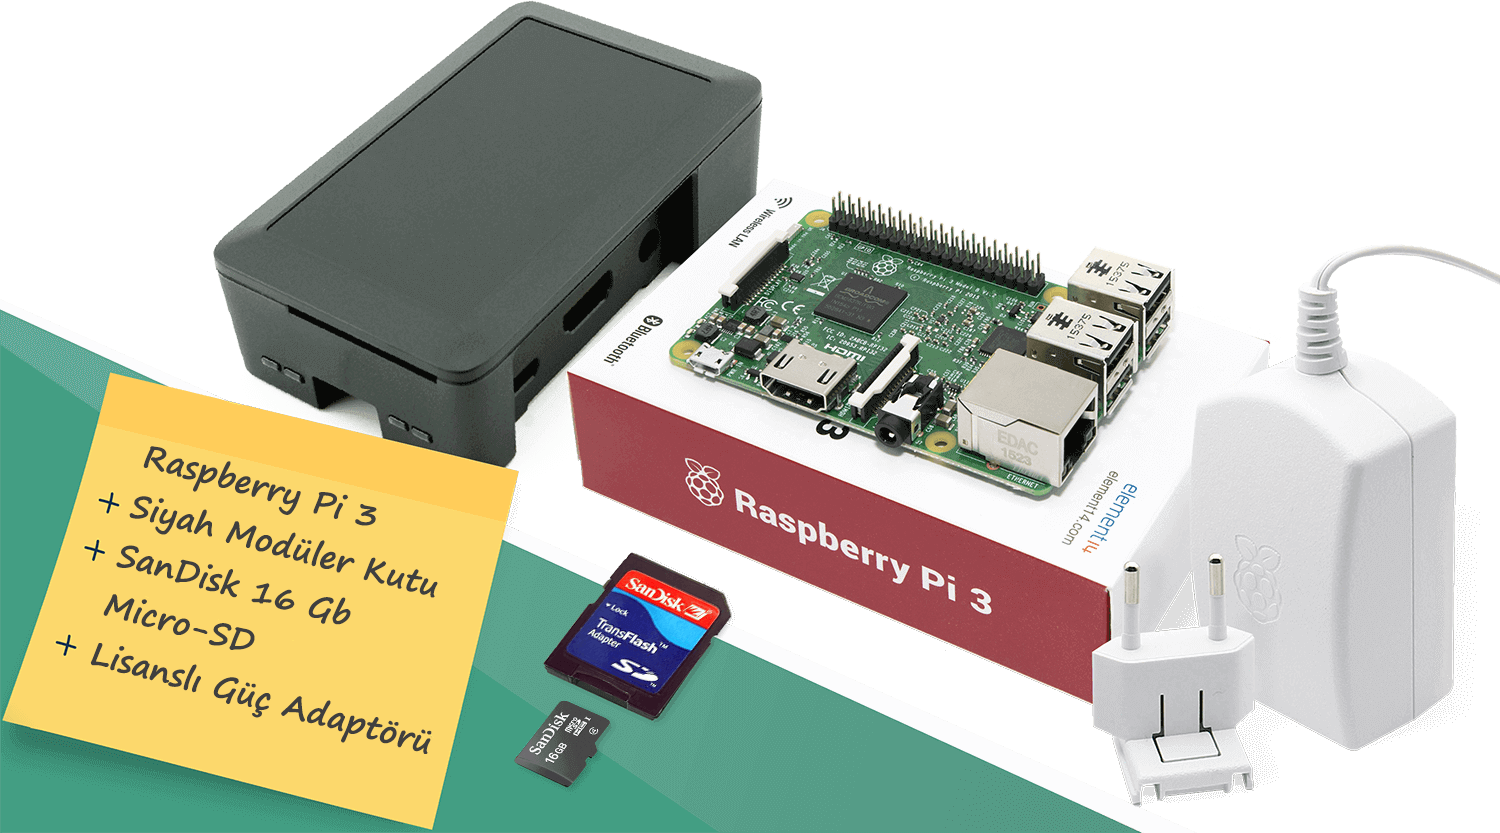 Raspberry-pi-3-starter-kit-product-photo